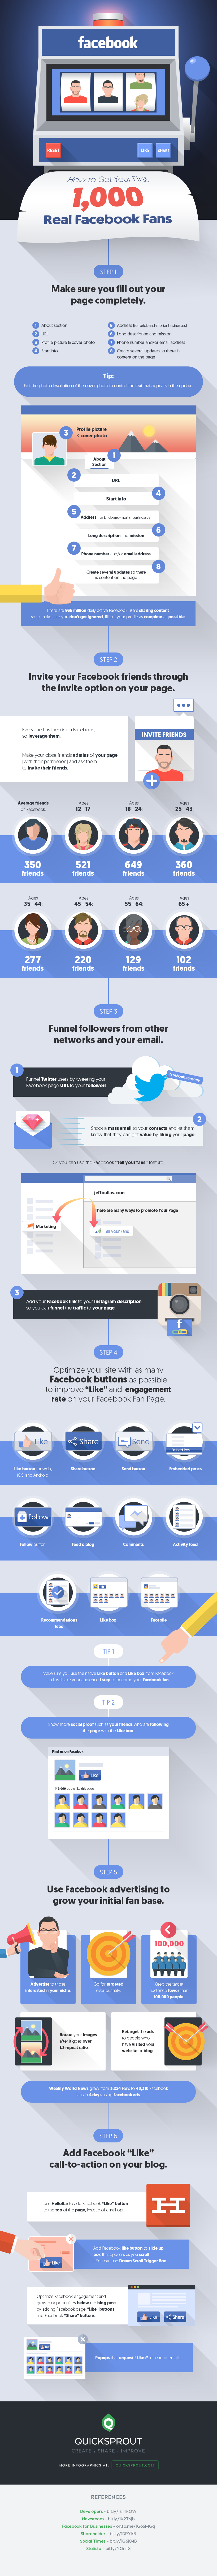 Getting Your First 1,000 Facebook Fans (Infographic)